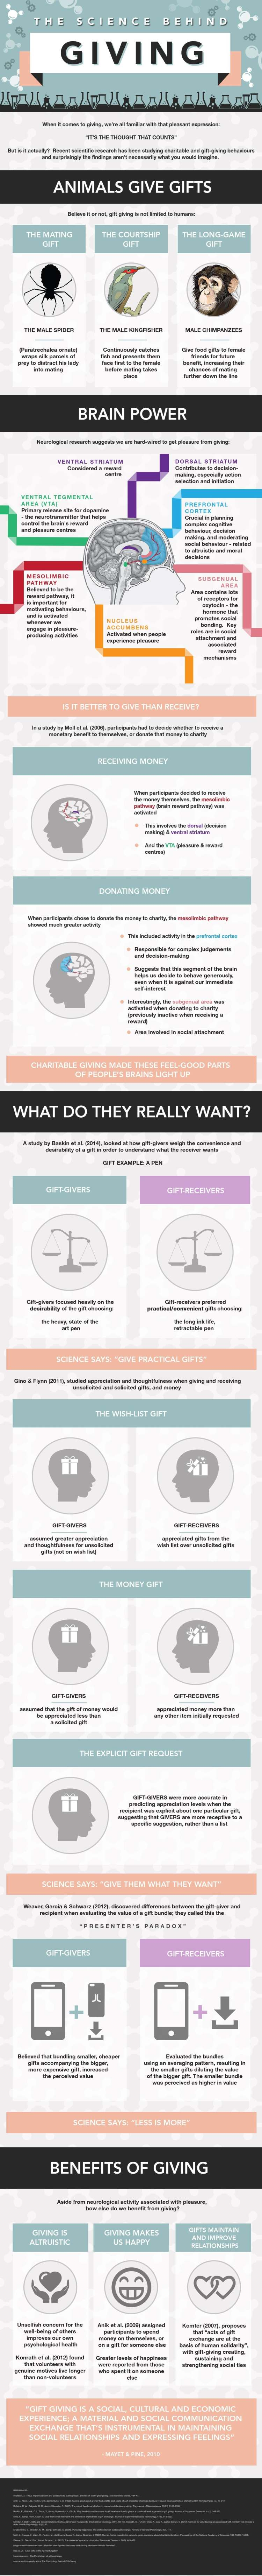 science behind giving infographic